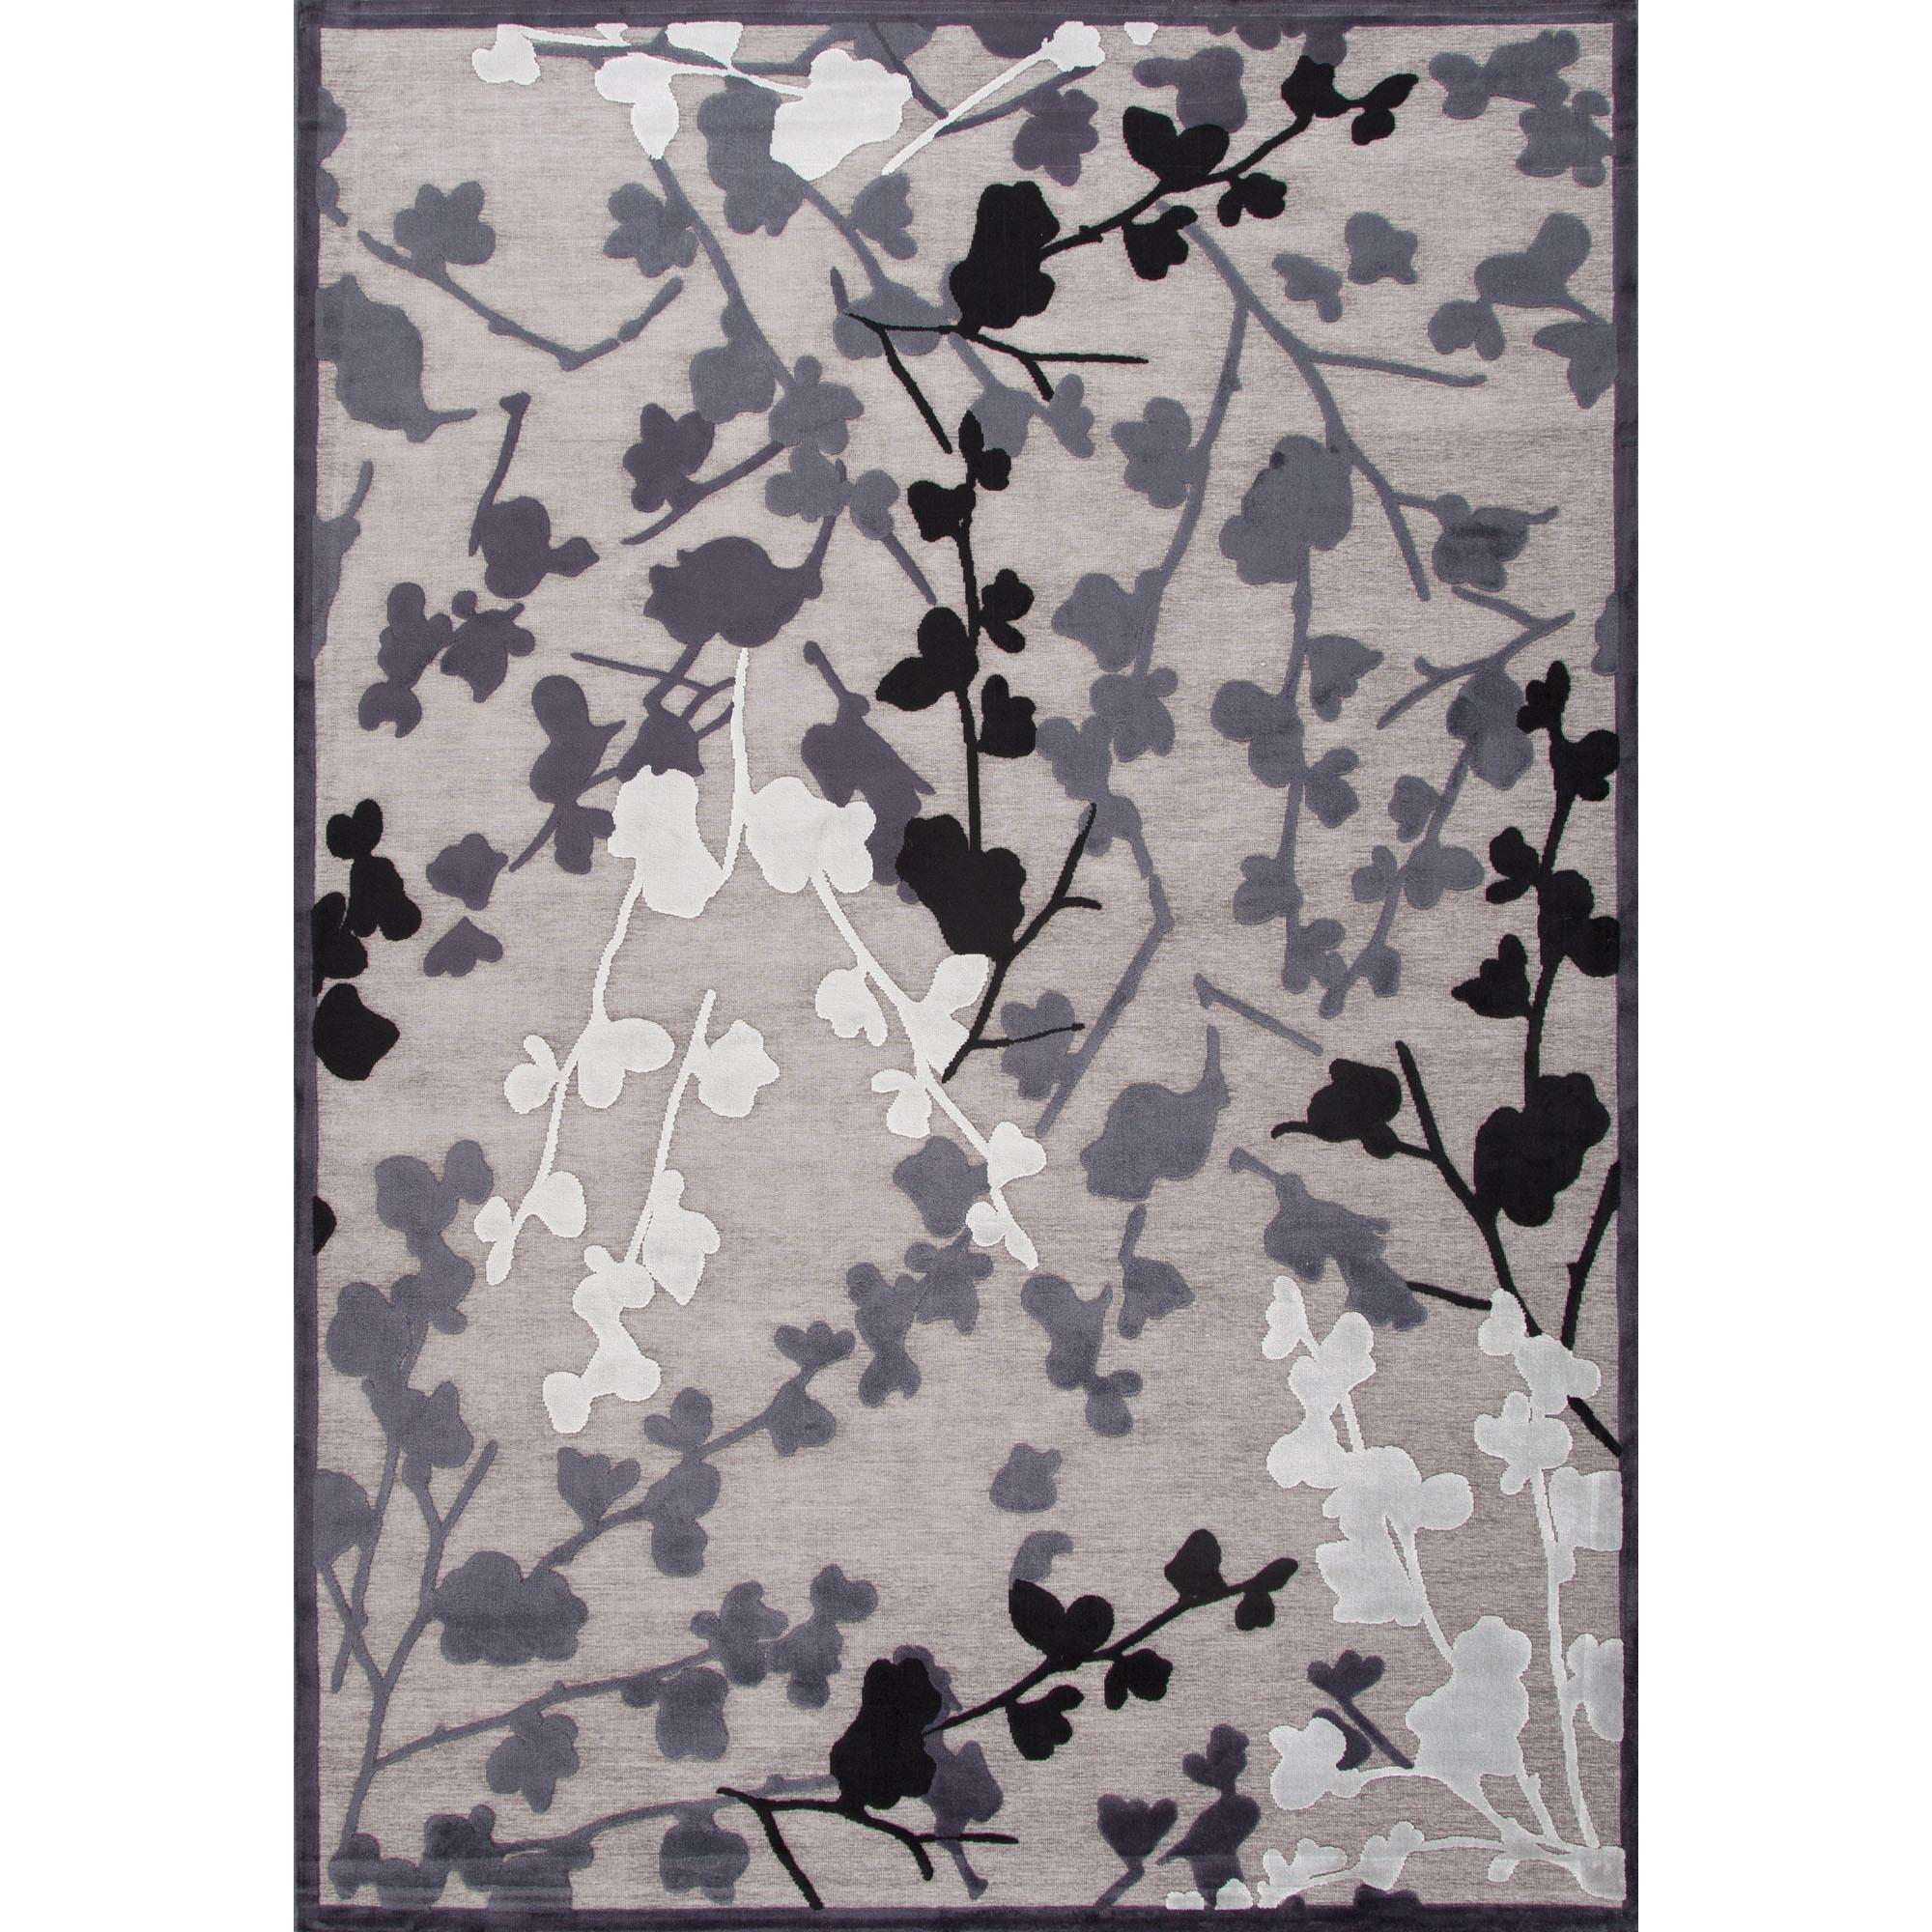 Fables 7.6 x 9.6 Rug by JAIPUR Living at Sprintz Furniture